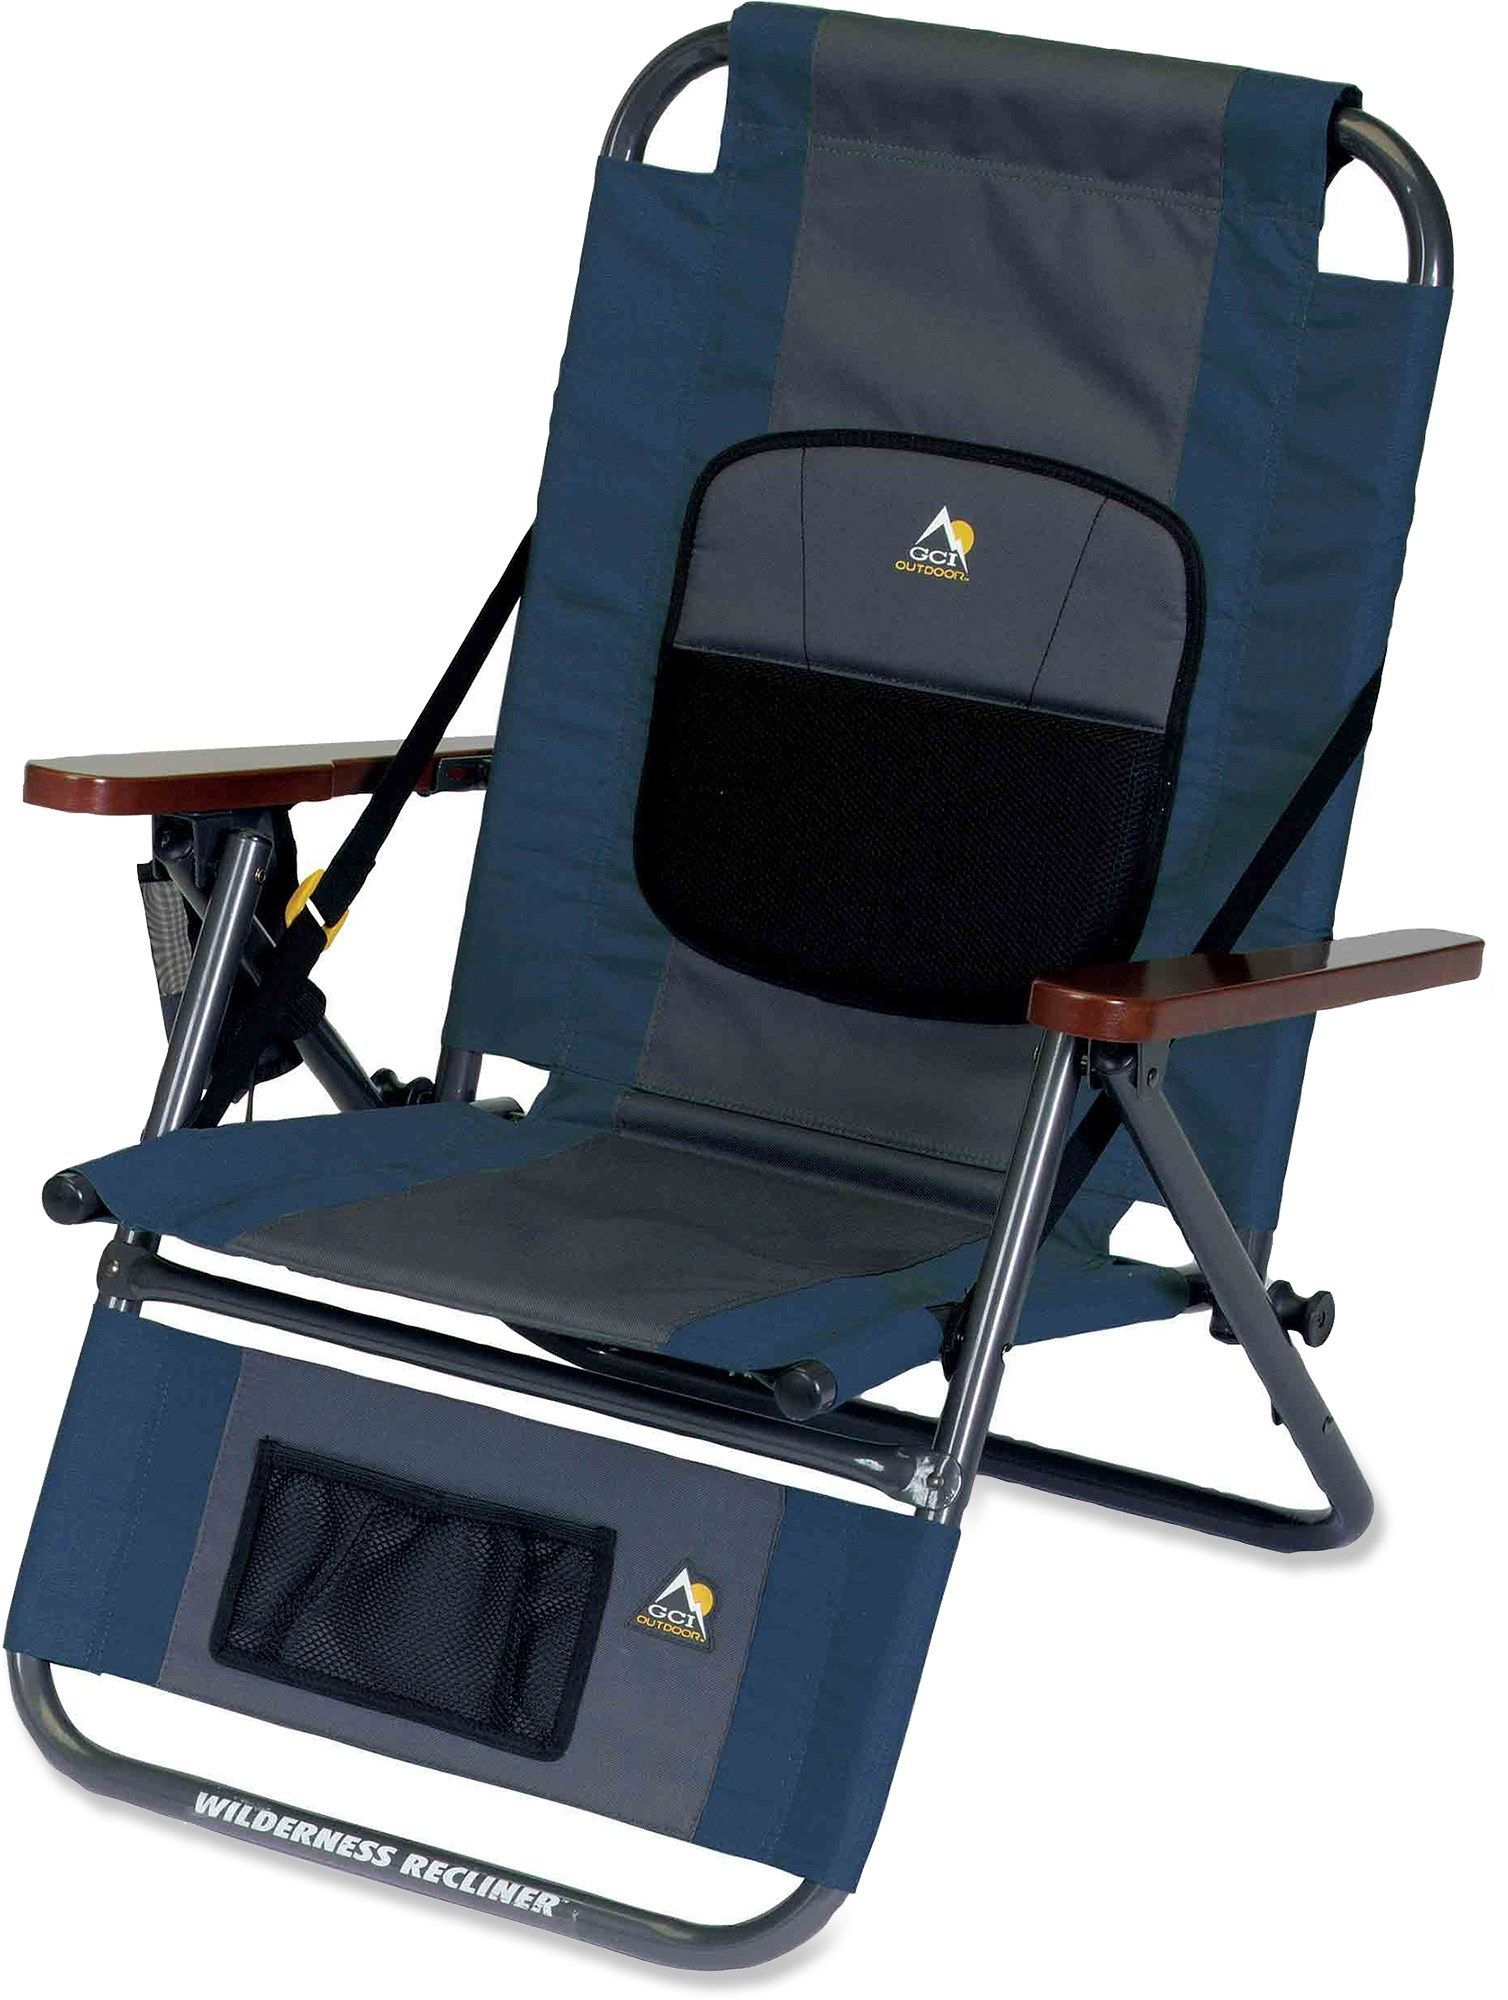 REI Beach Chair REI is mainly associated with camping equipment